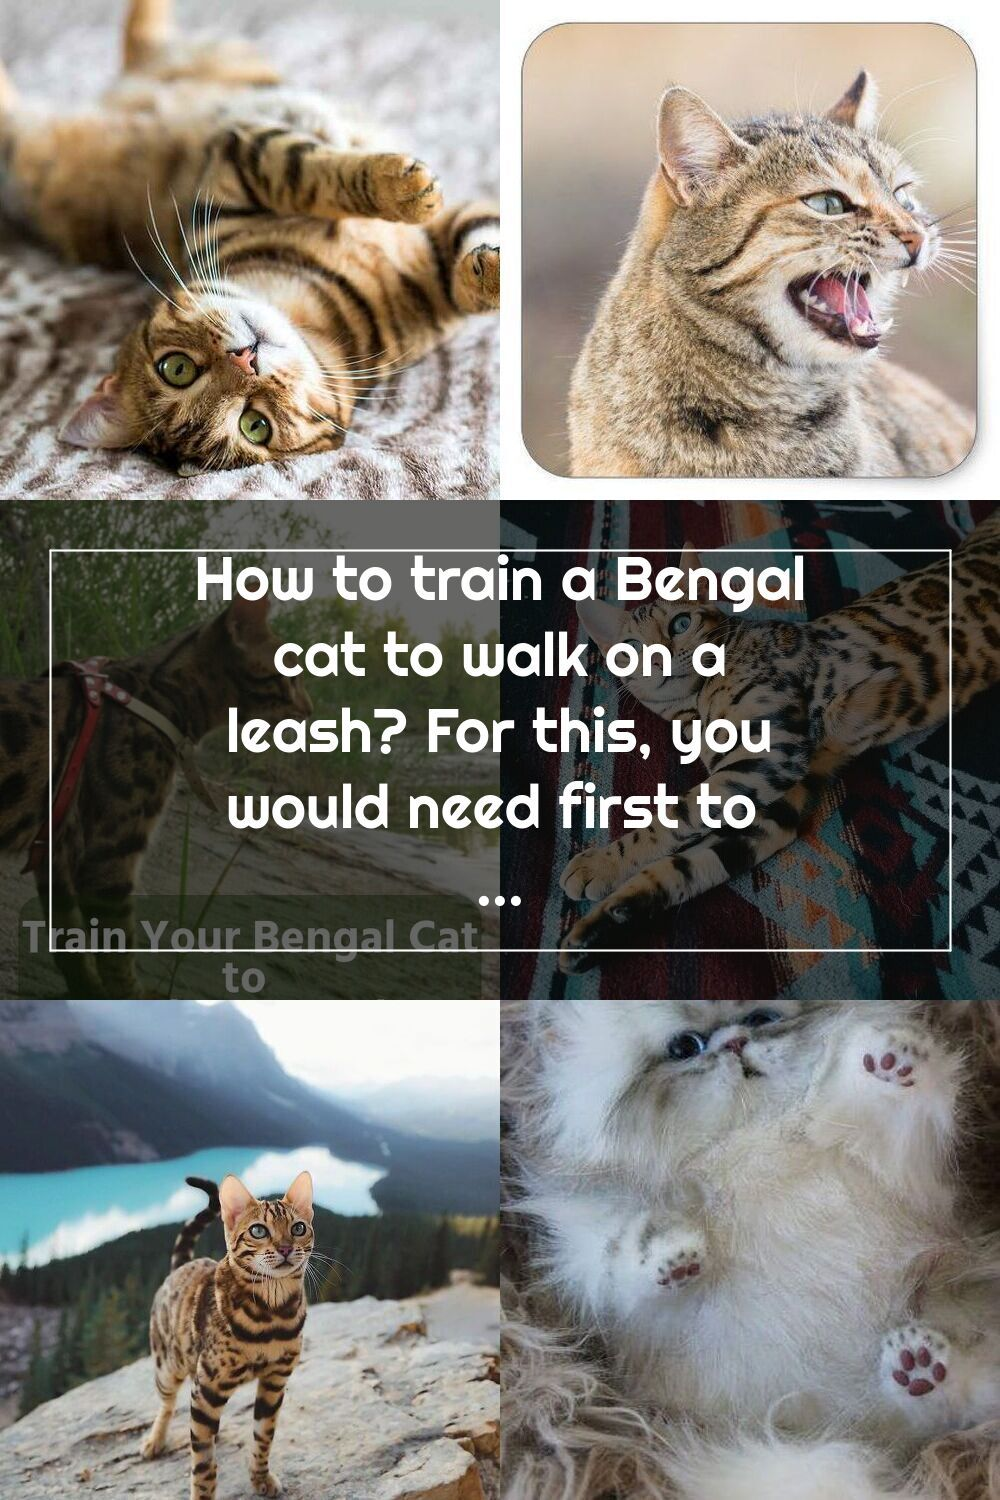 How to train a Bengal cat to walk on a leash? For this